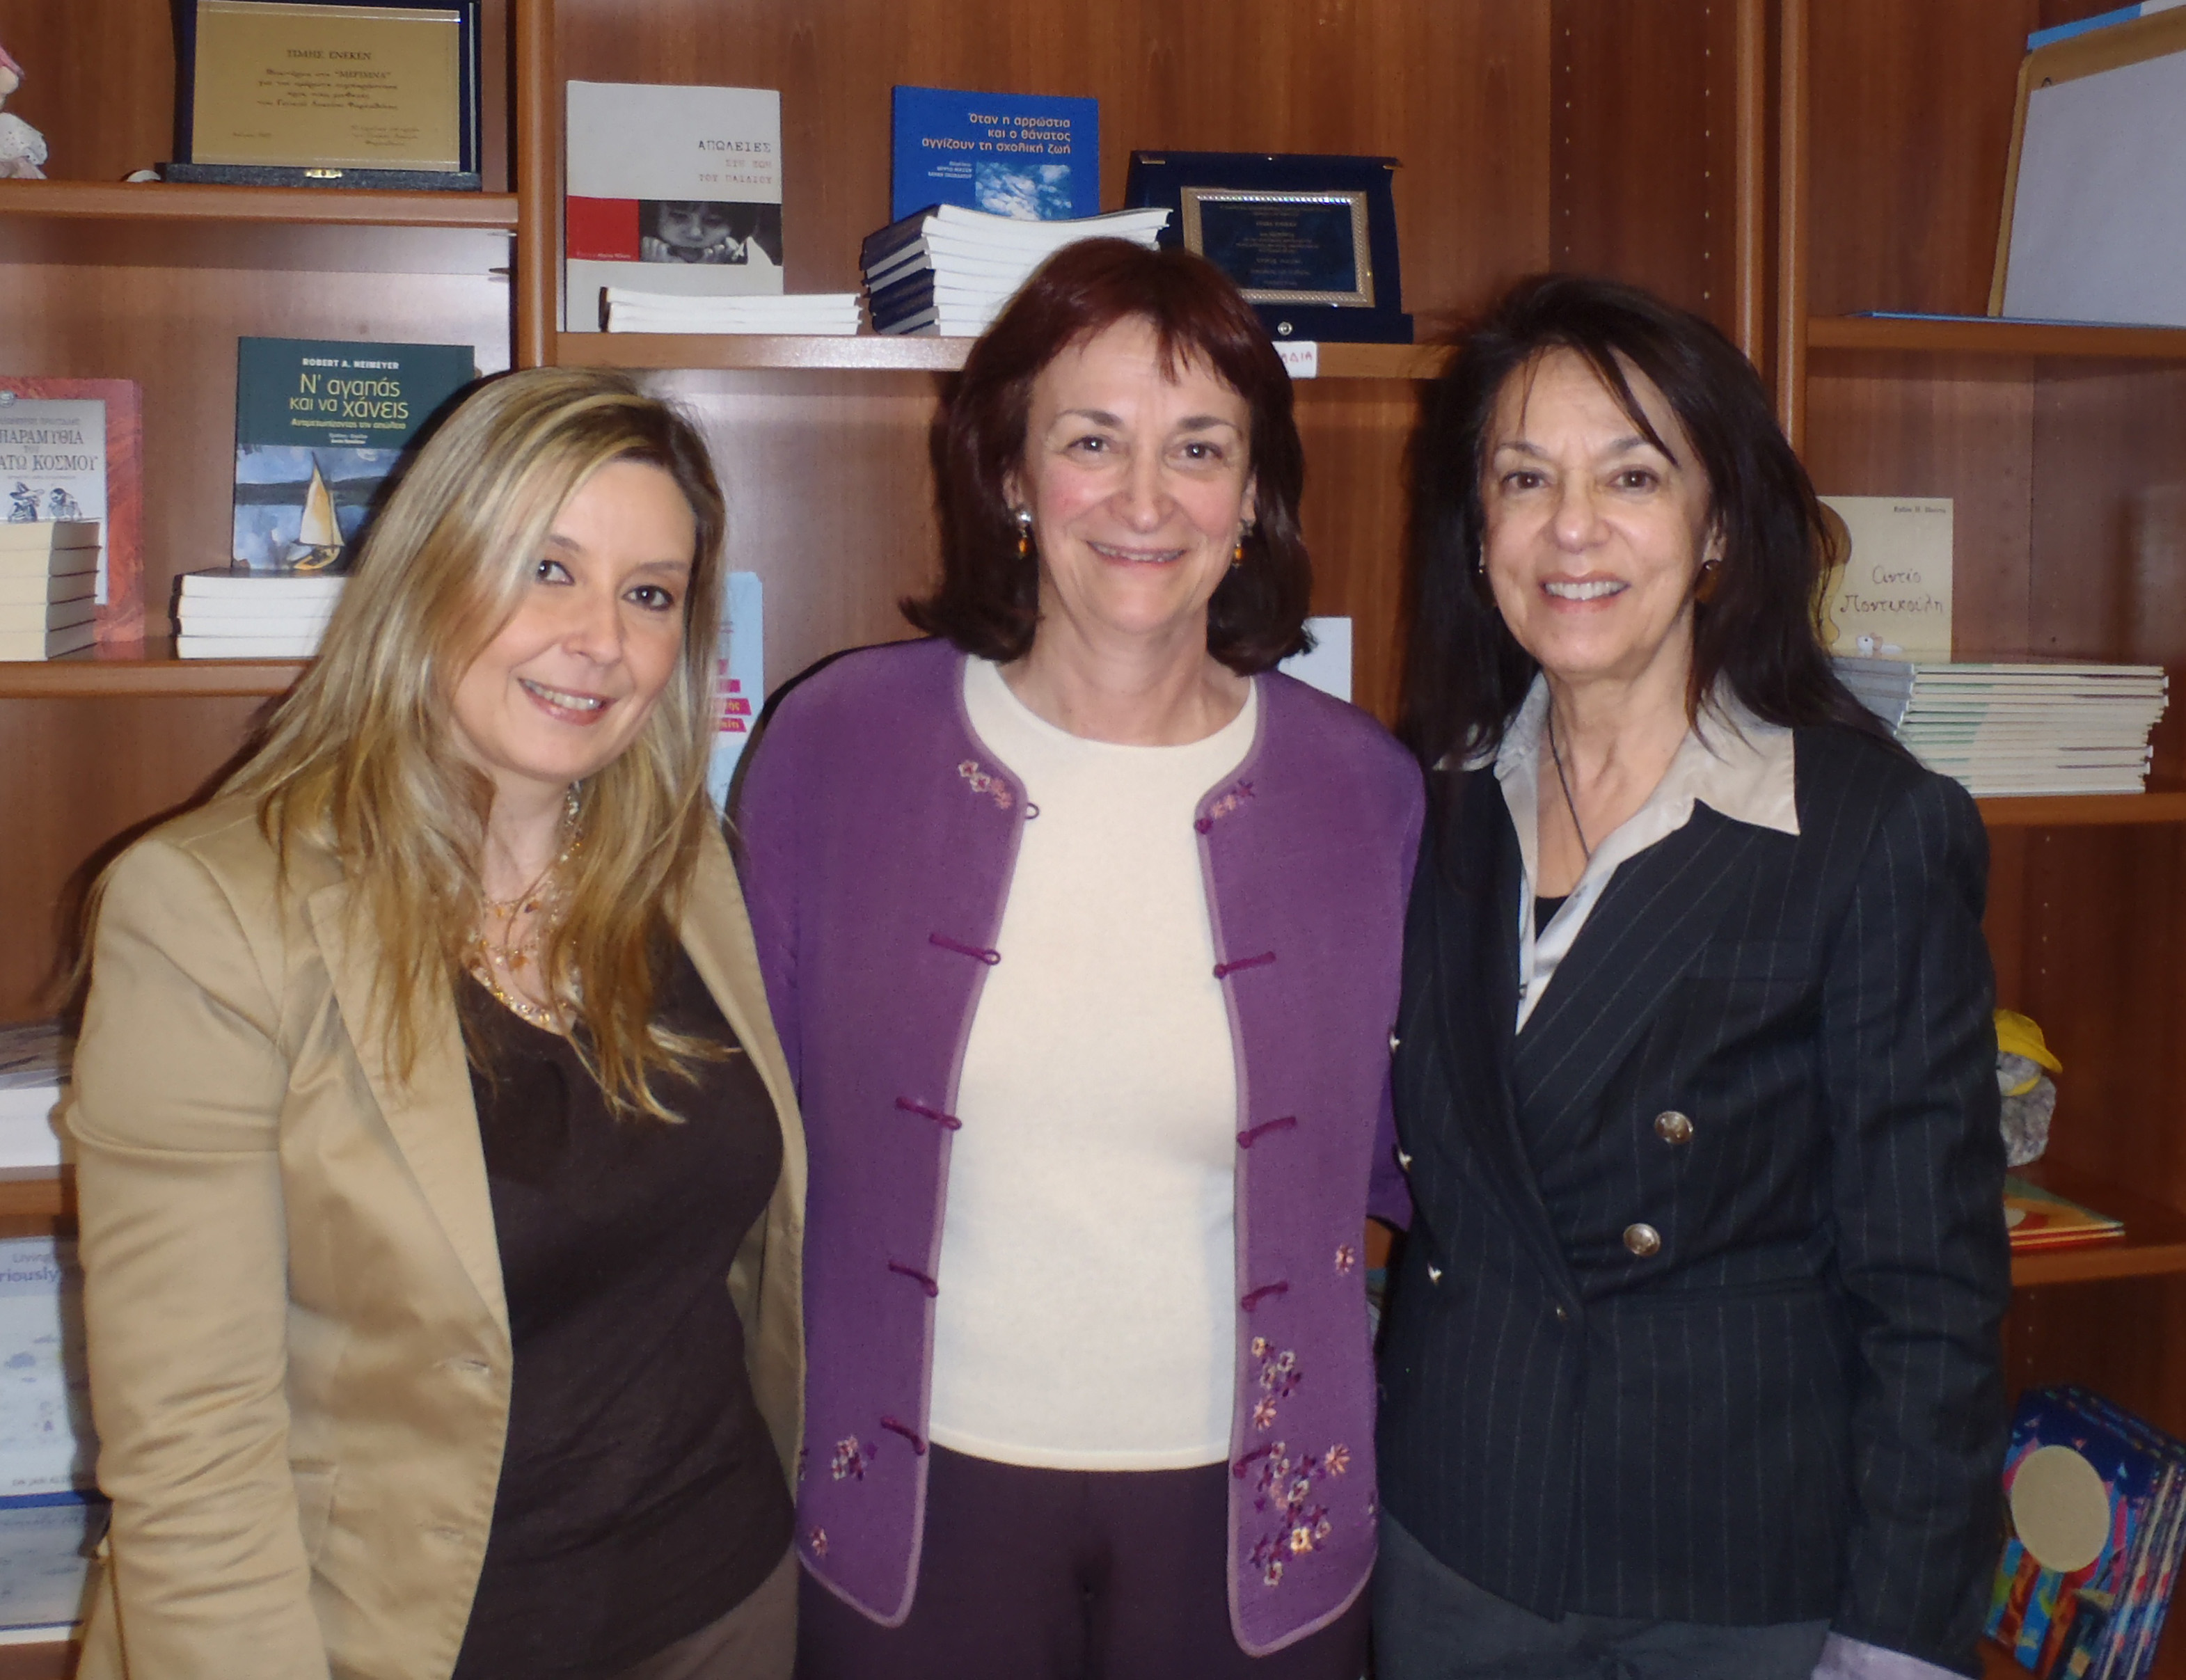 Marcie Boucouvalas with Nancy Pyrini and Danai Papadatou in Greece